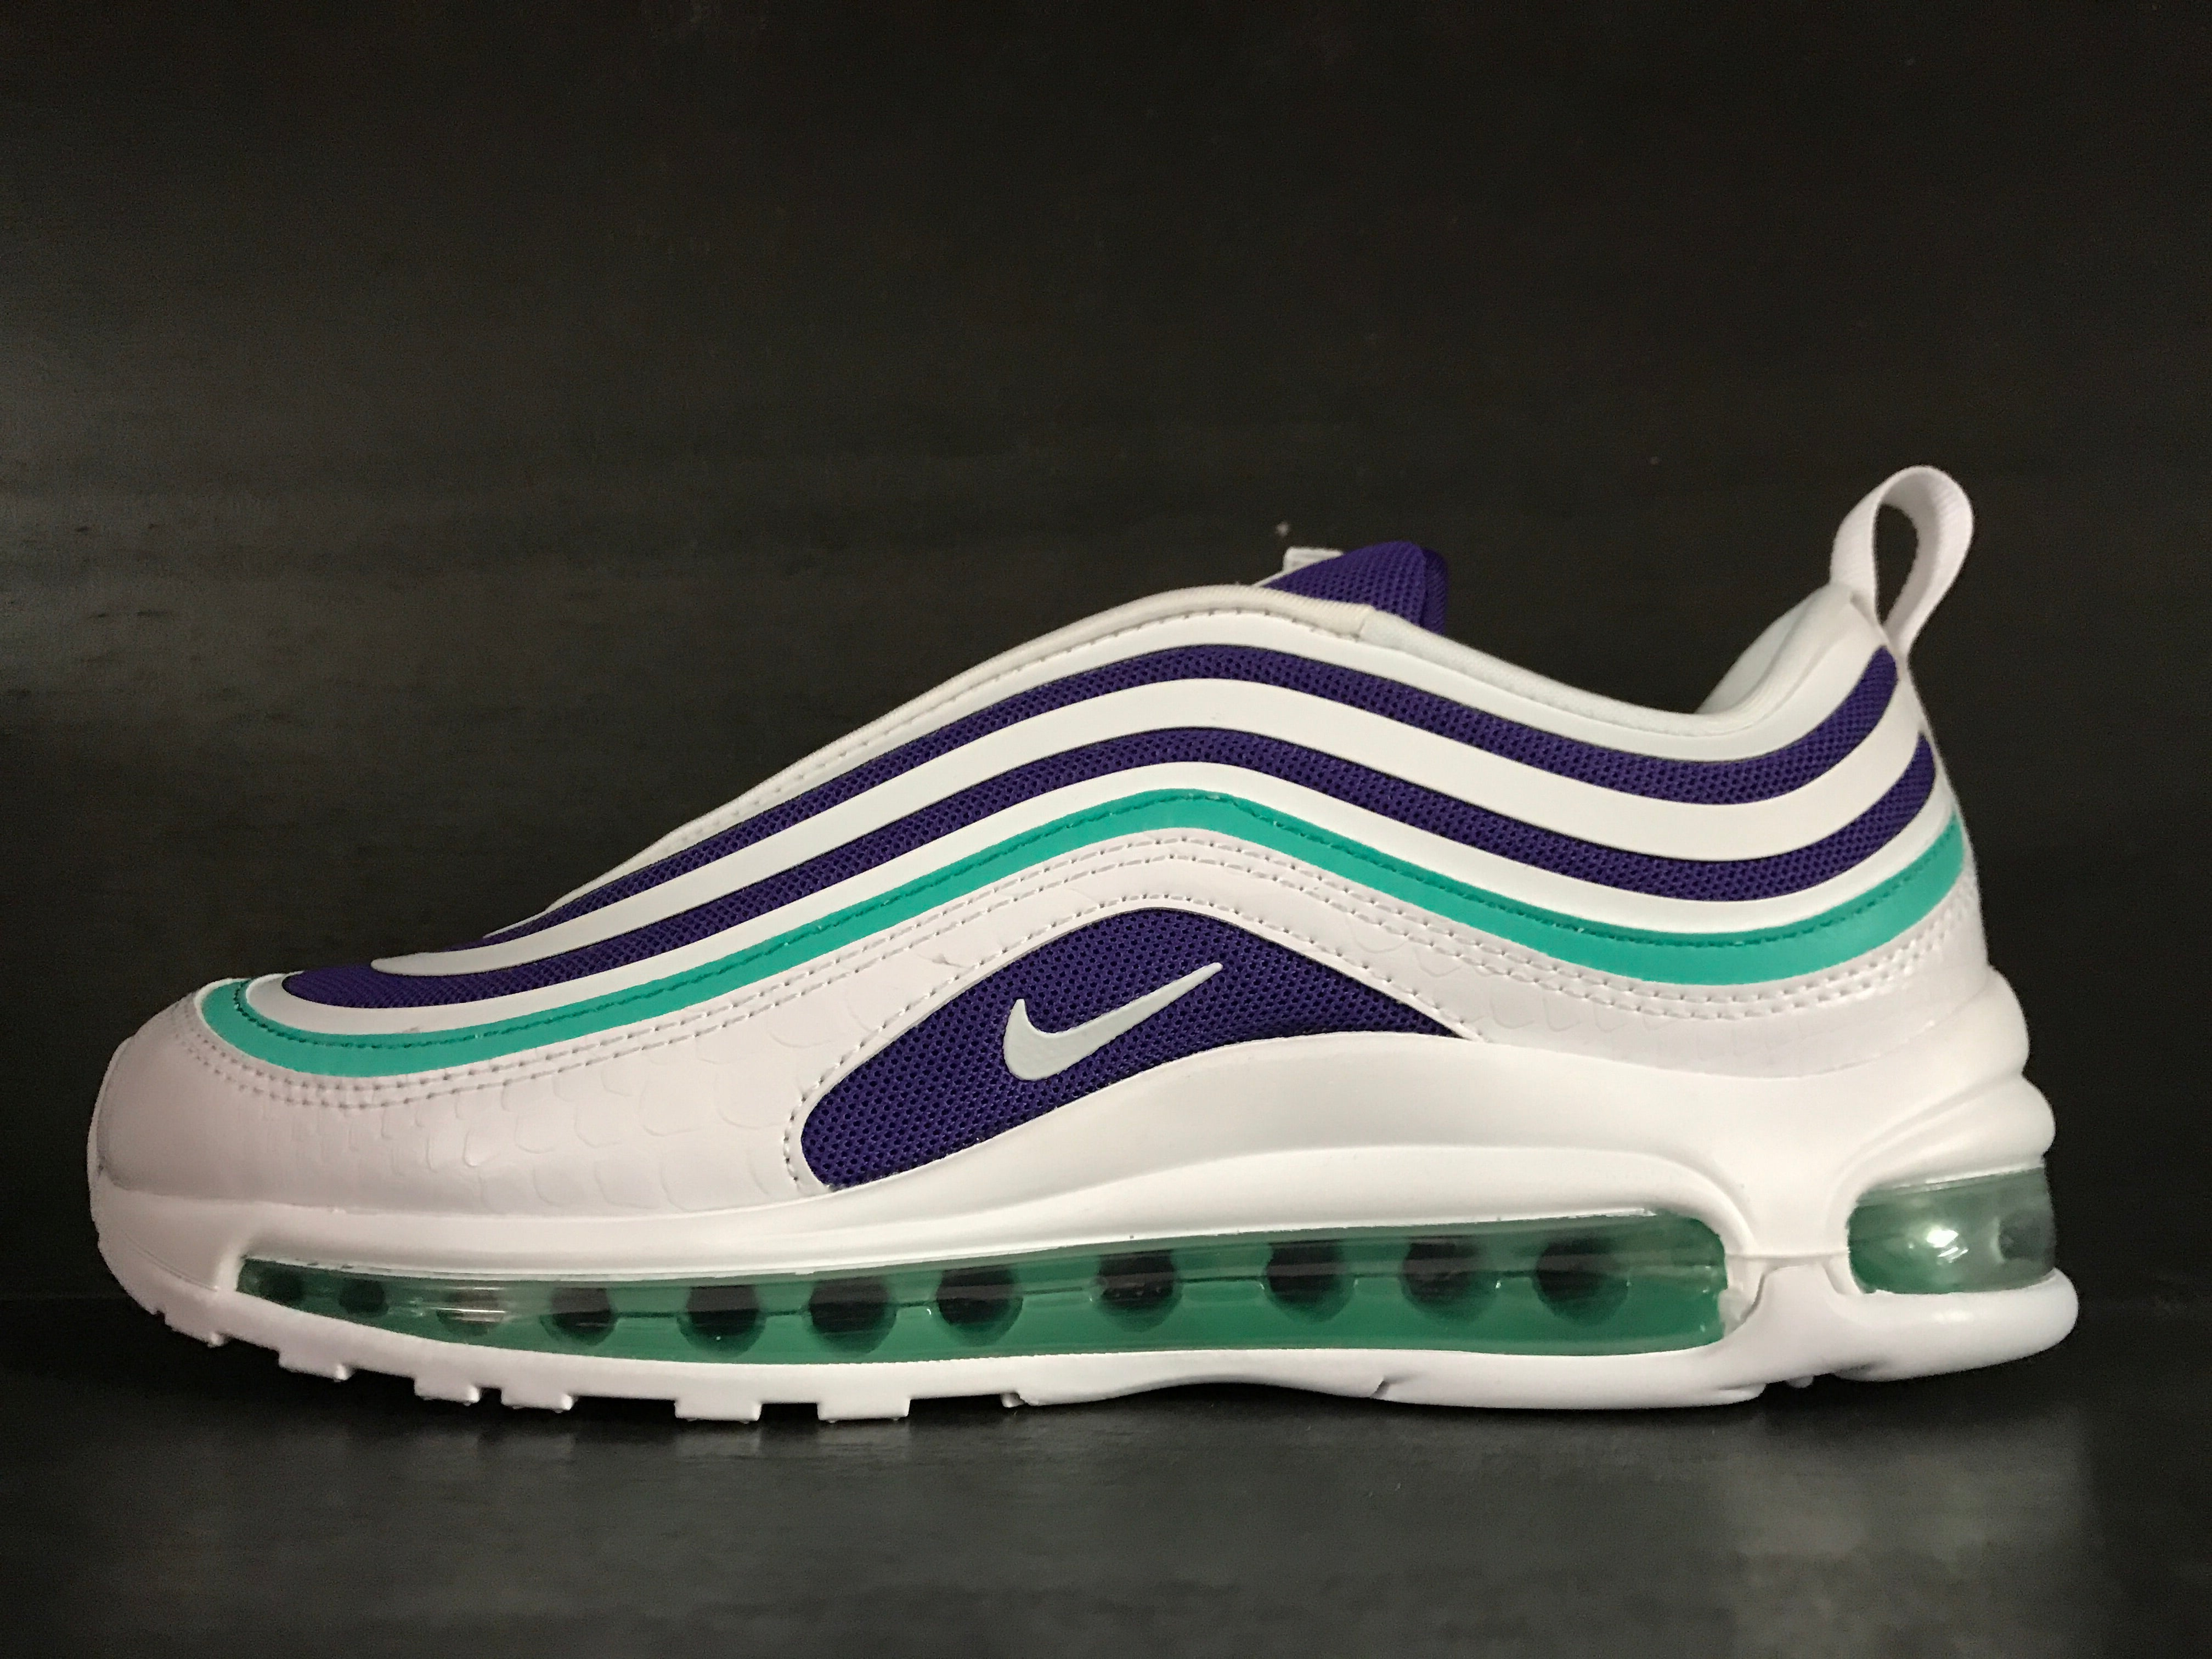 W Air Max 98 UL '17 SE 'Grape'